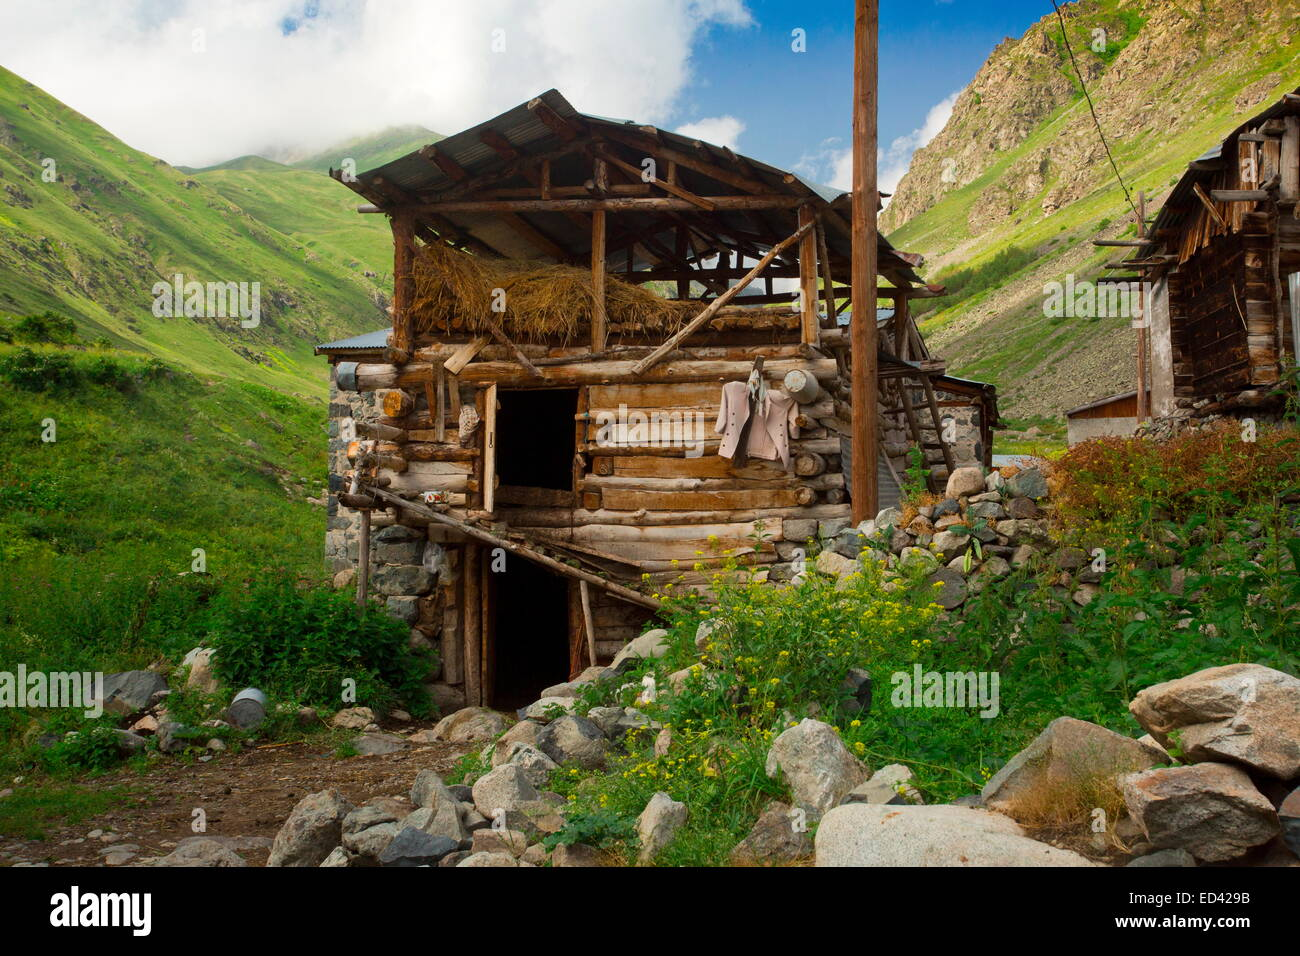 kackar mountain turkey stockfotos kackar mountain turkey bilder alamy. Black Bedroom Furniture Sets. Home Design Ideas